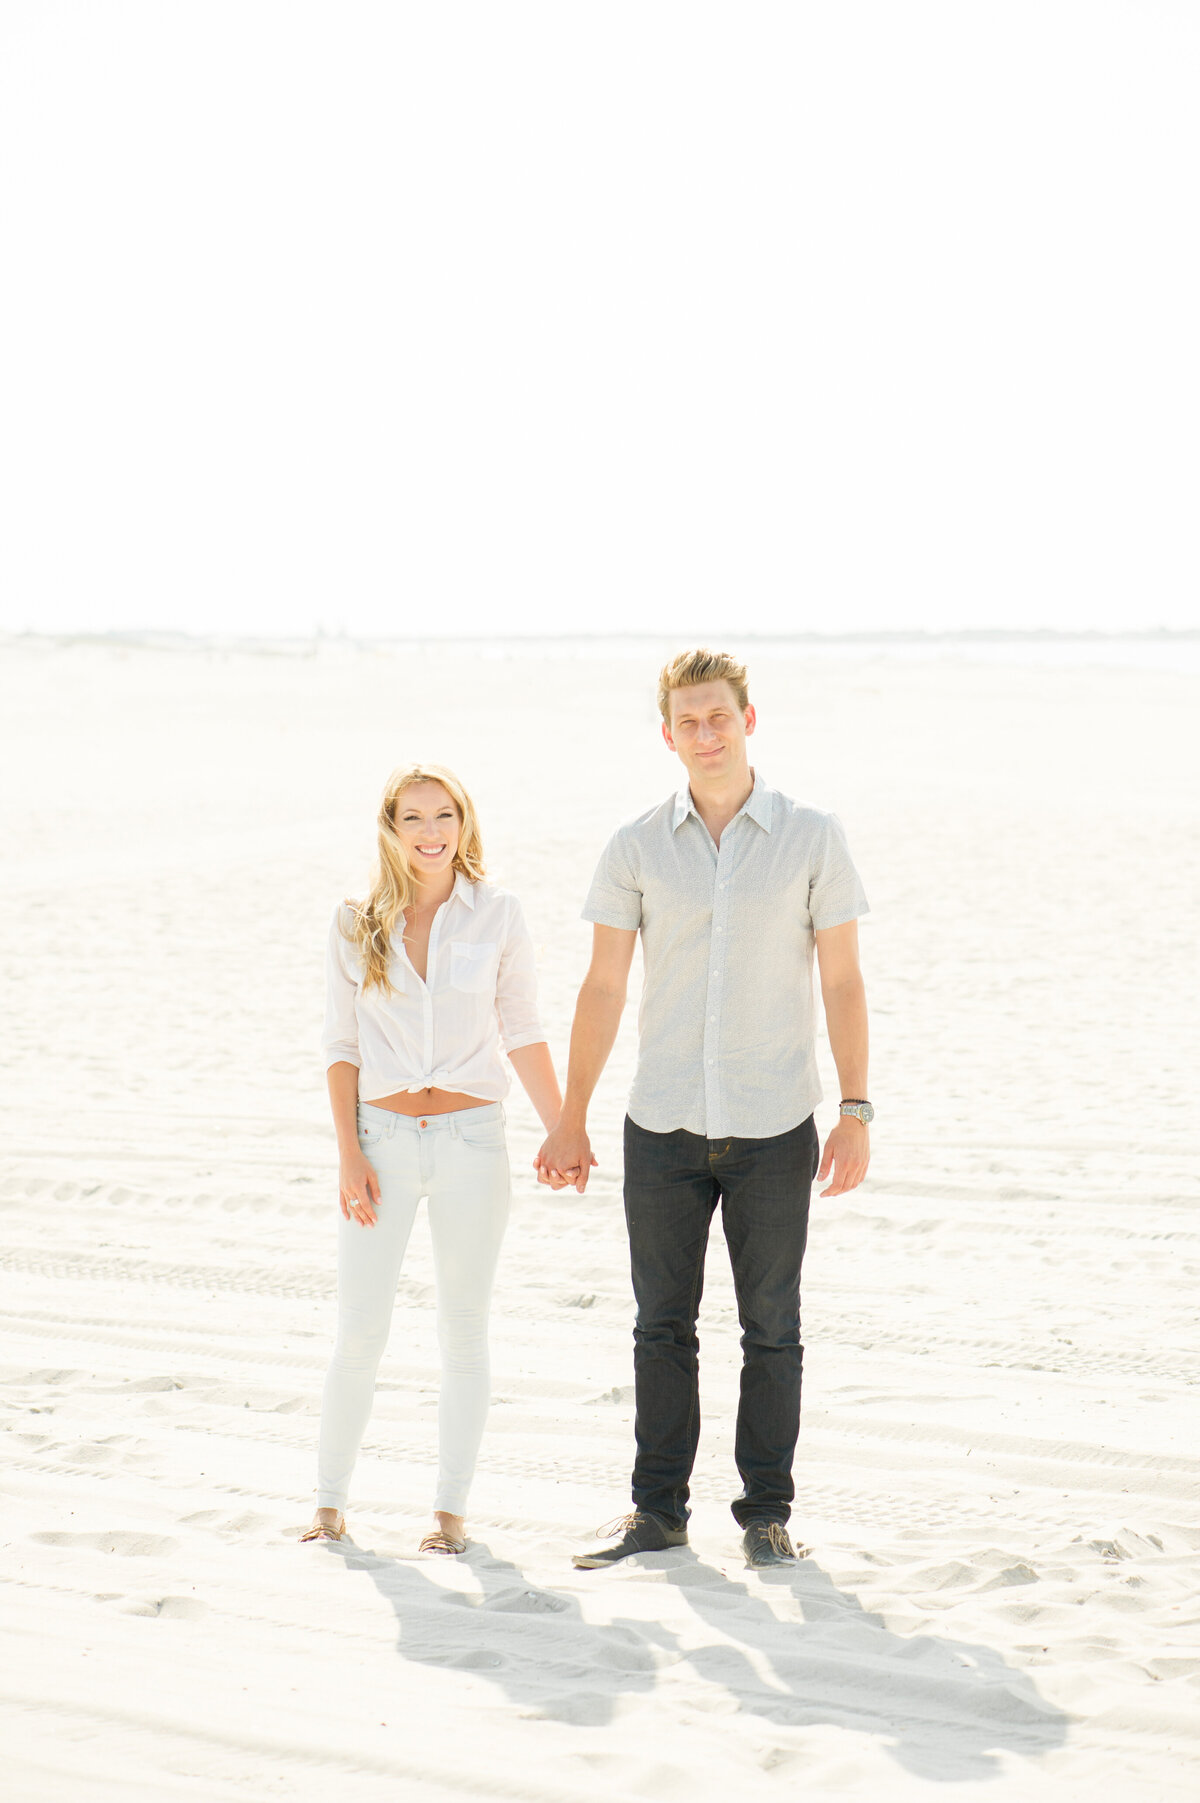 671 TWAH-DOUGHERTY-BEACH-ENGAGEMENT-SESSION